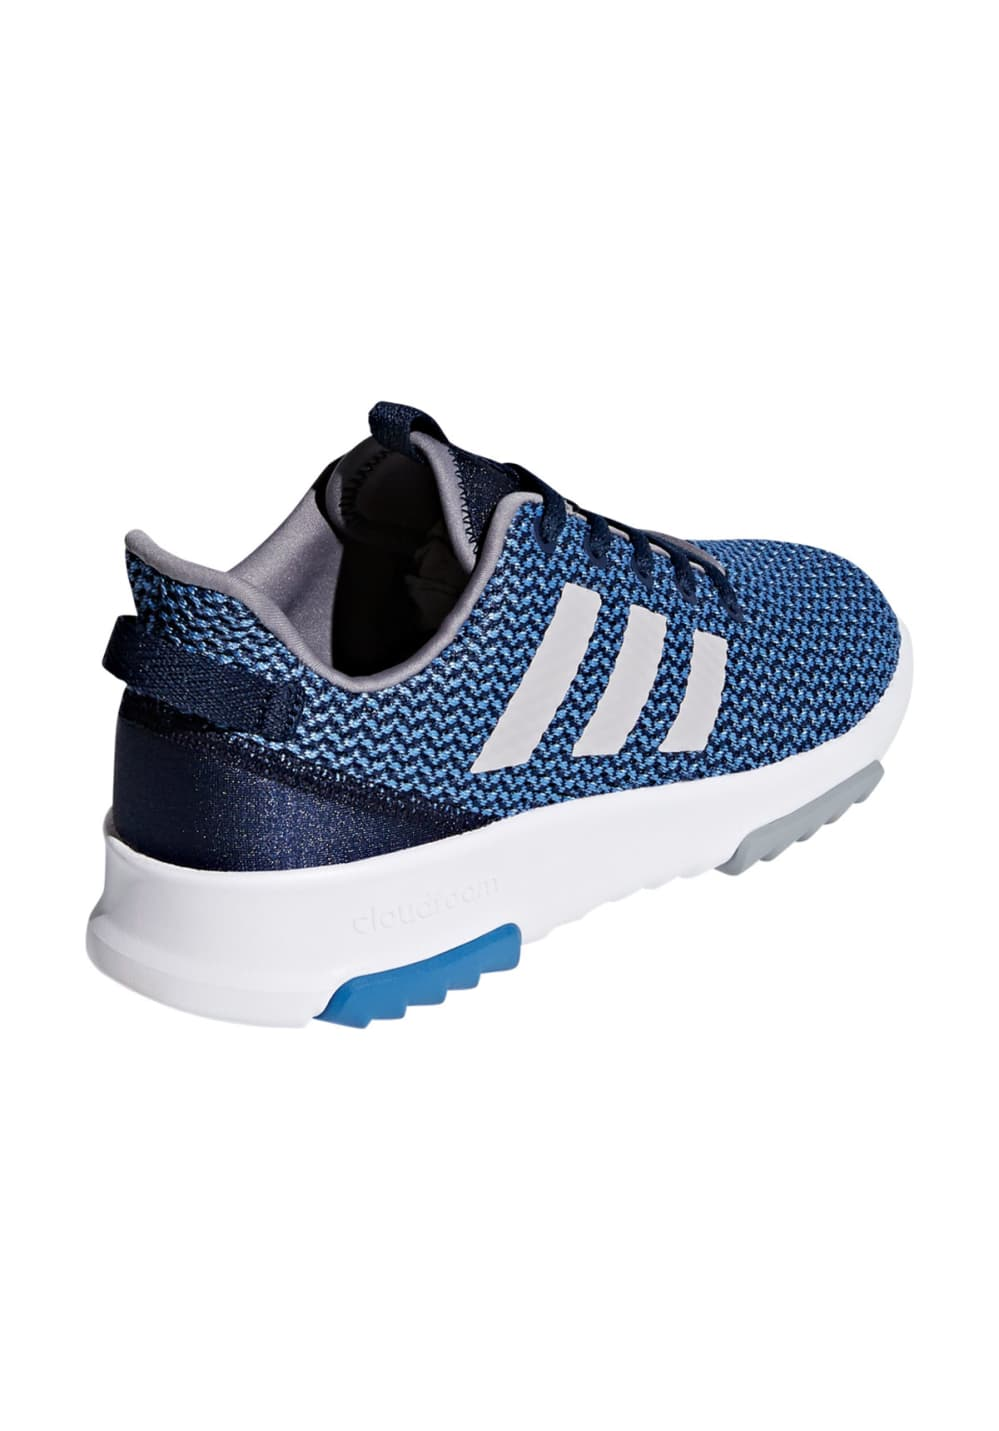 2a985eafda01f3 adidas CF RACER TR K - Running shoes - Blue